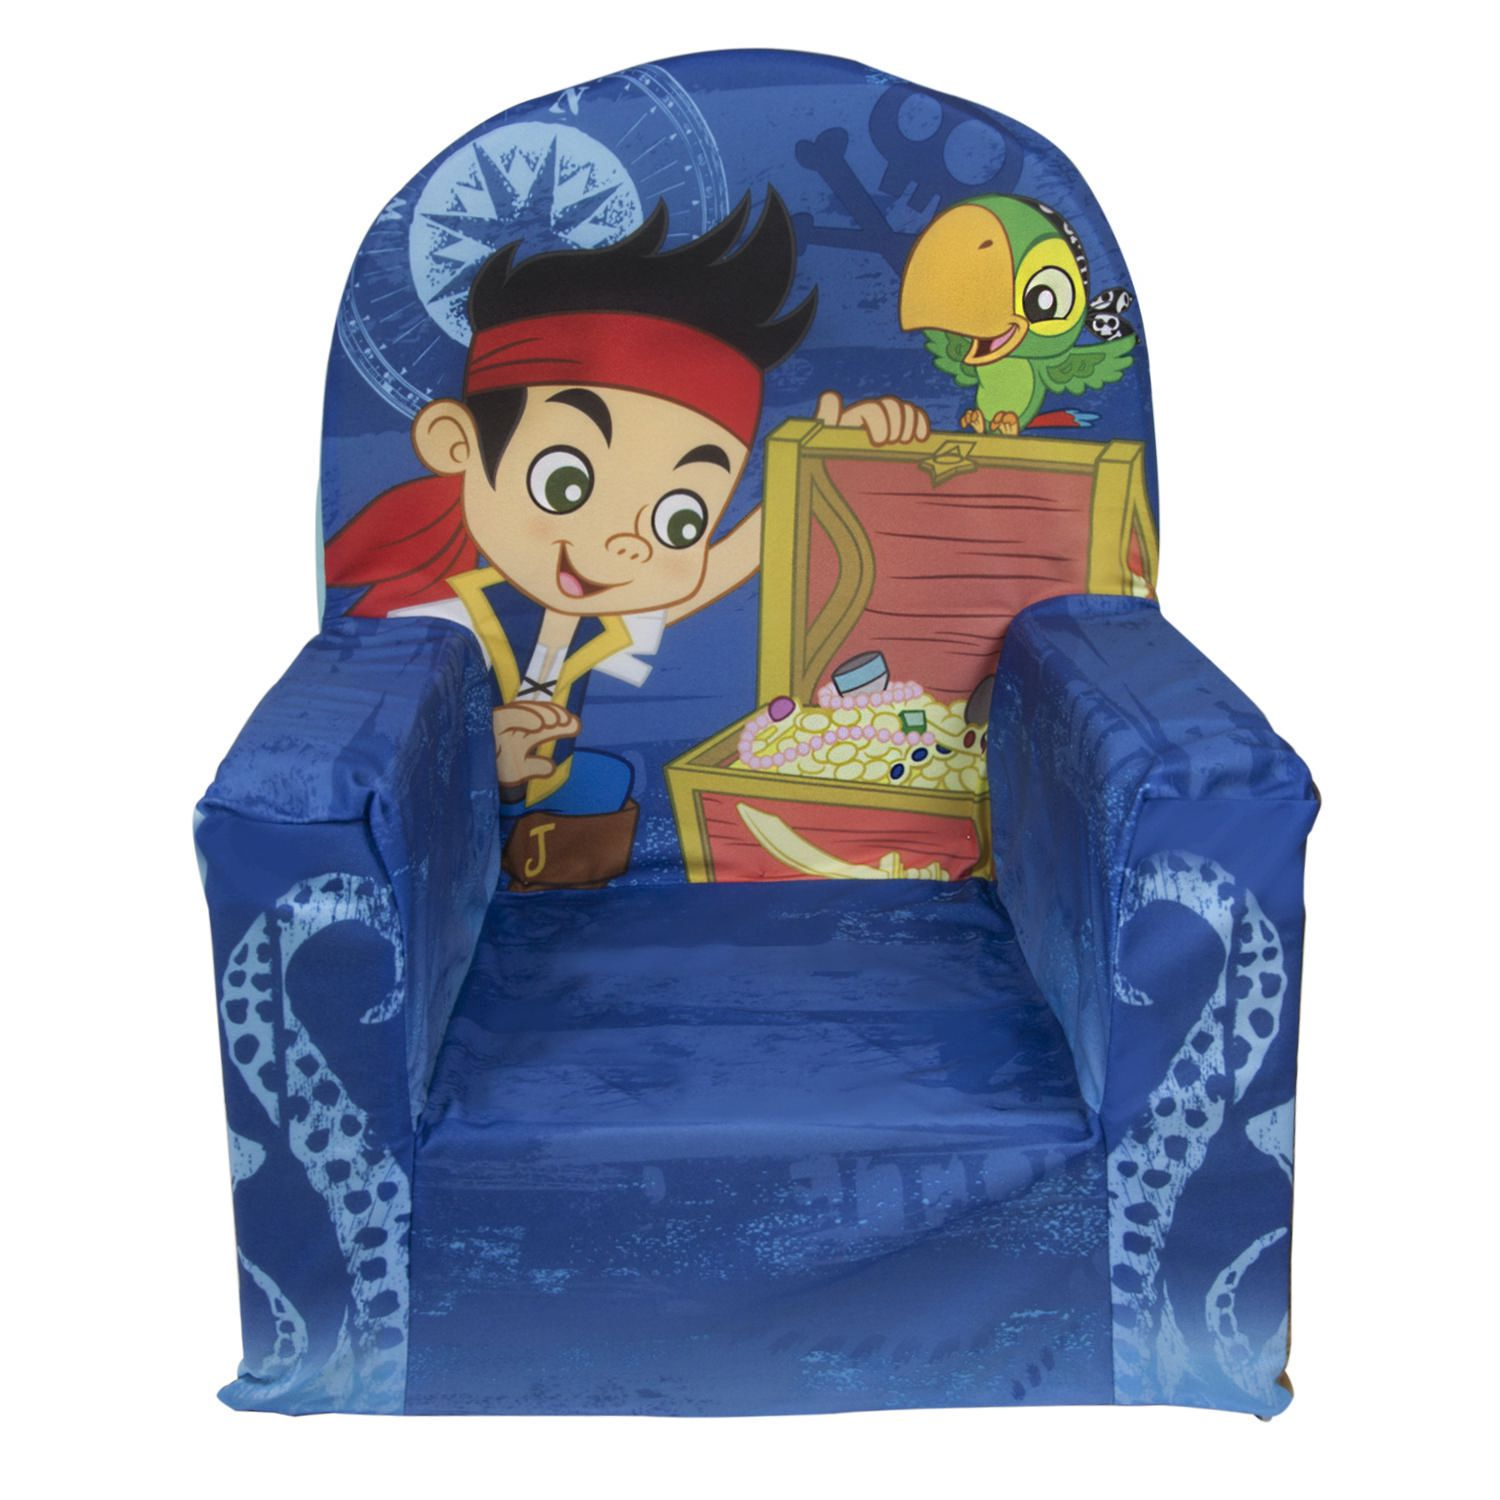 Remarkable Marshmallow High Back Chair Disneys Jake Neverland Download Free Architecture Designs Scobabritishbridgeorg